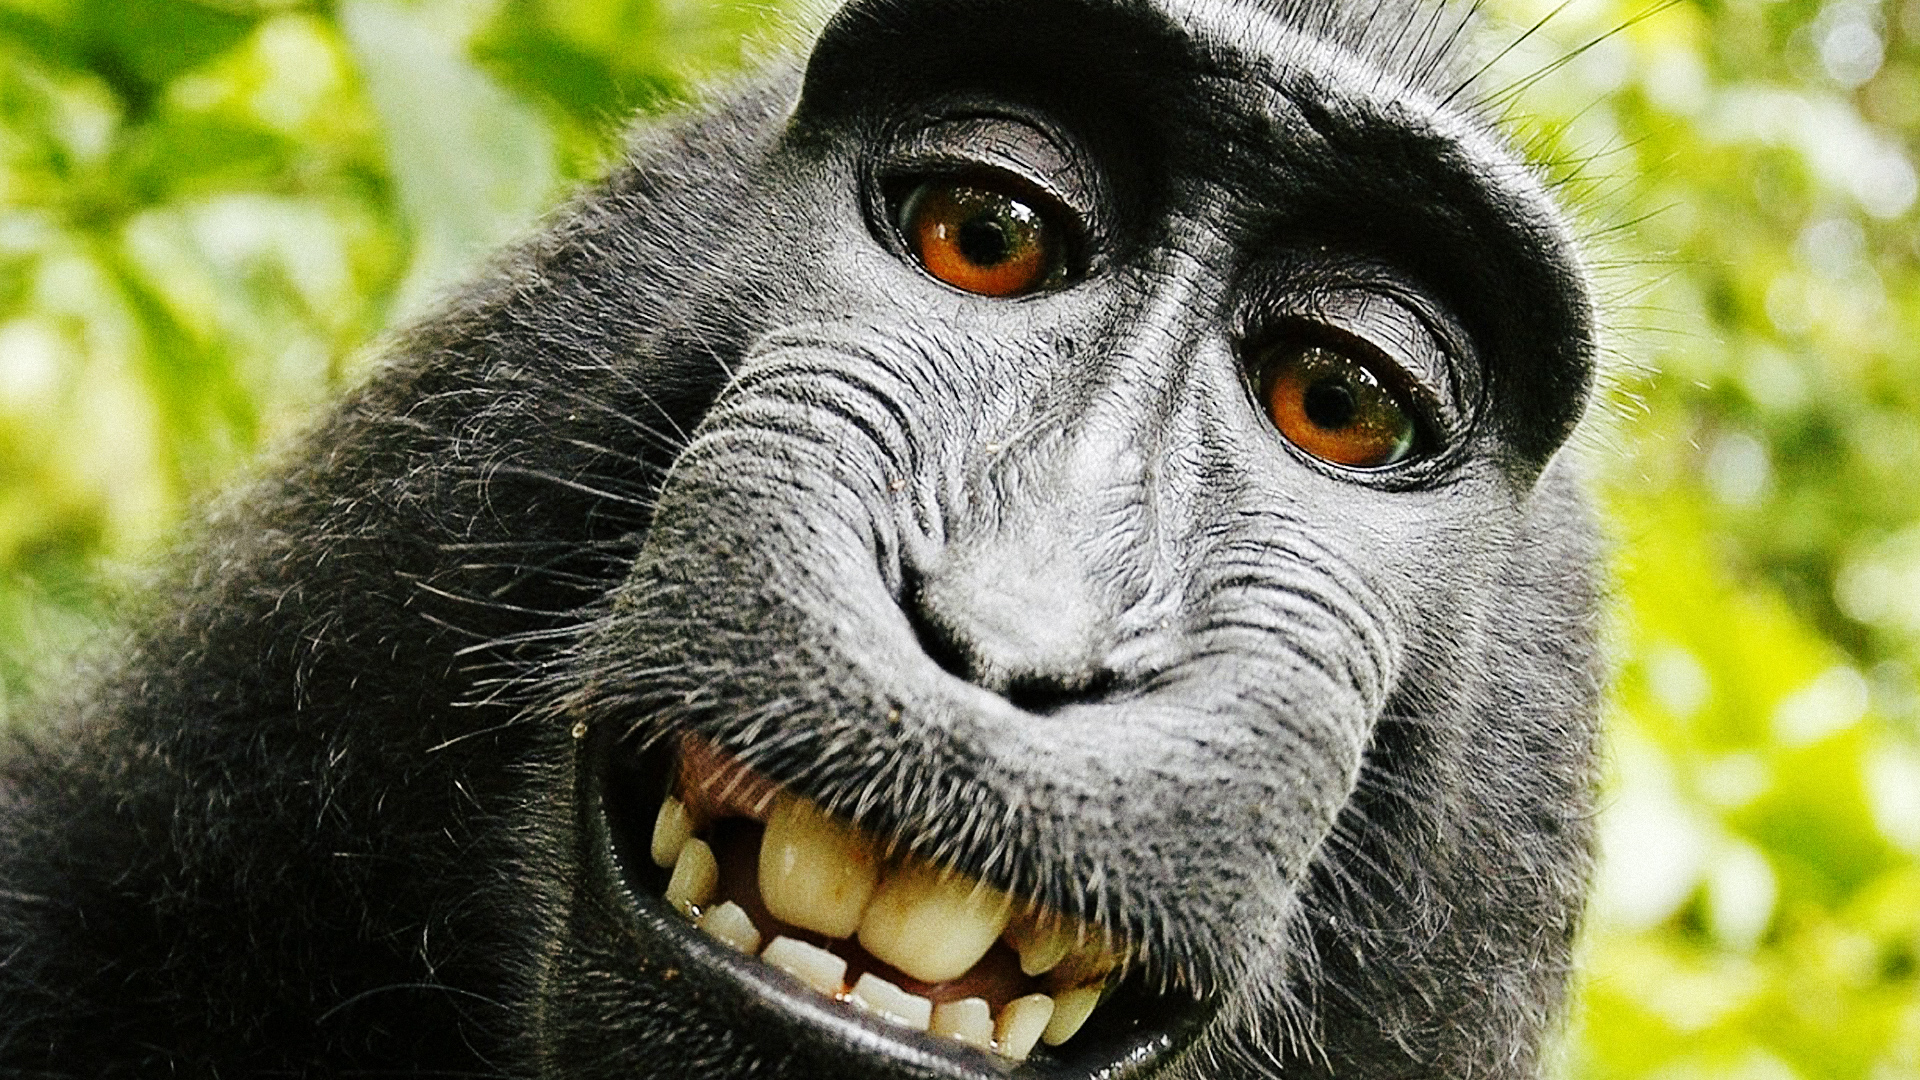 We Asked A Bunch Of Lawyers: Who Owns The Copyright To This Amazing Monkey Selfie? | Fast Company | Business + Innovation